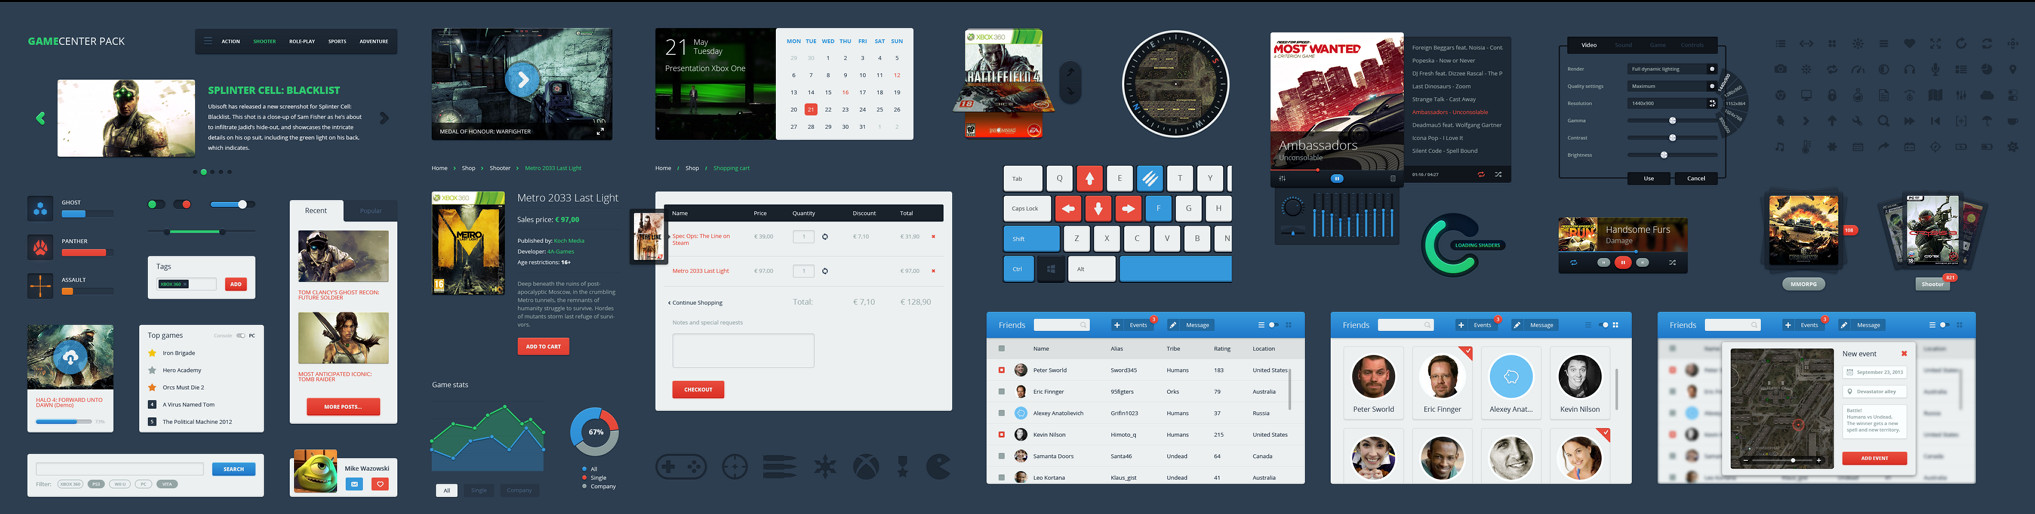 Modern set of Web UI Kit in PSD format